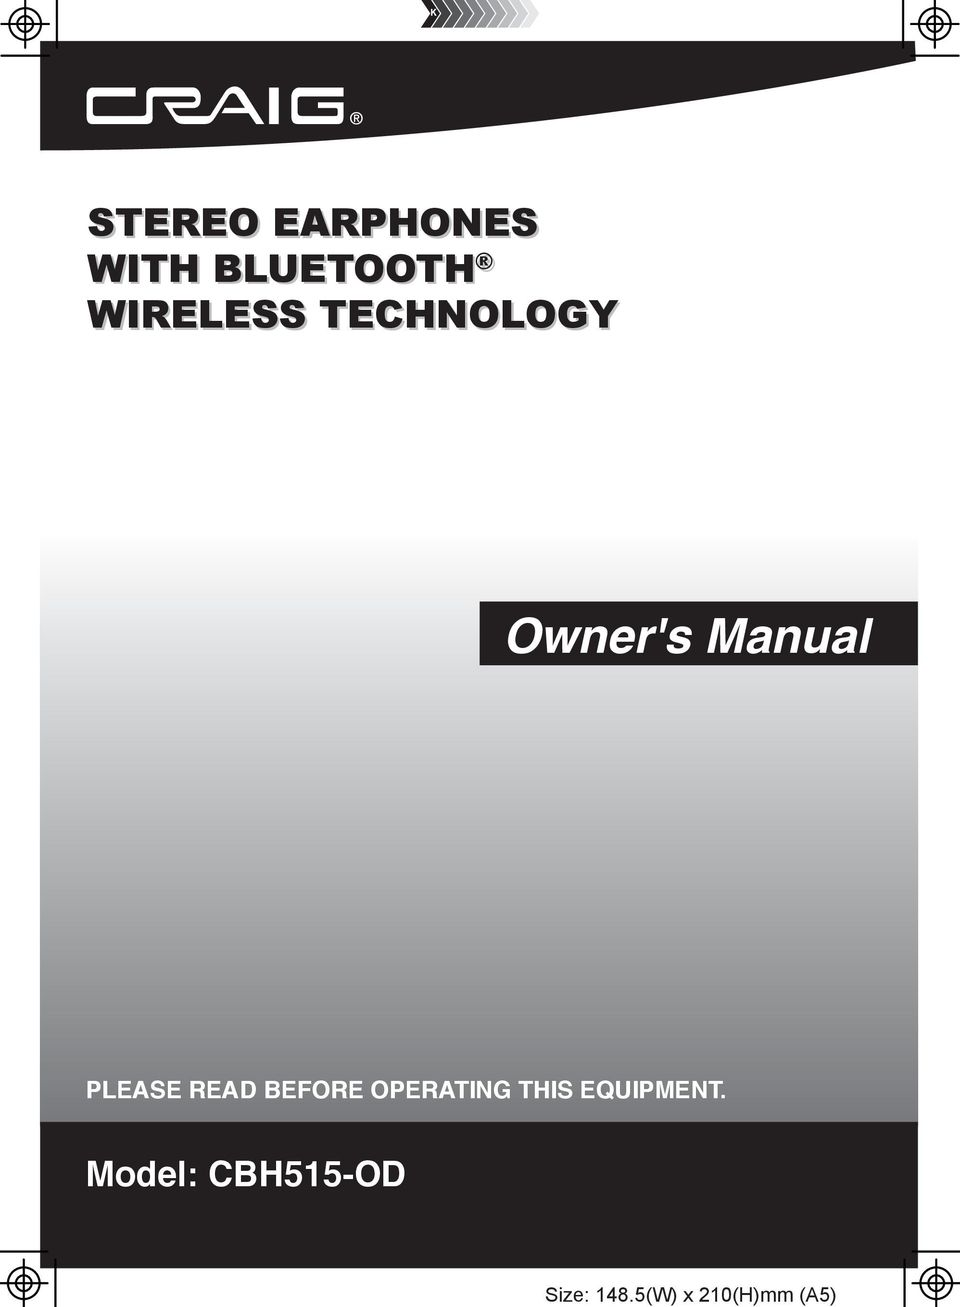 WITH BLUETOOTH WIRELESS TECHNOLOGY